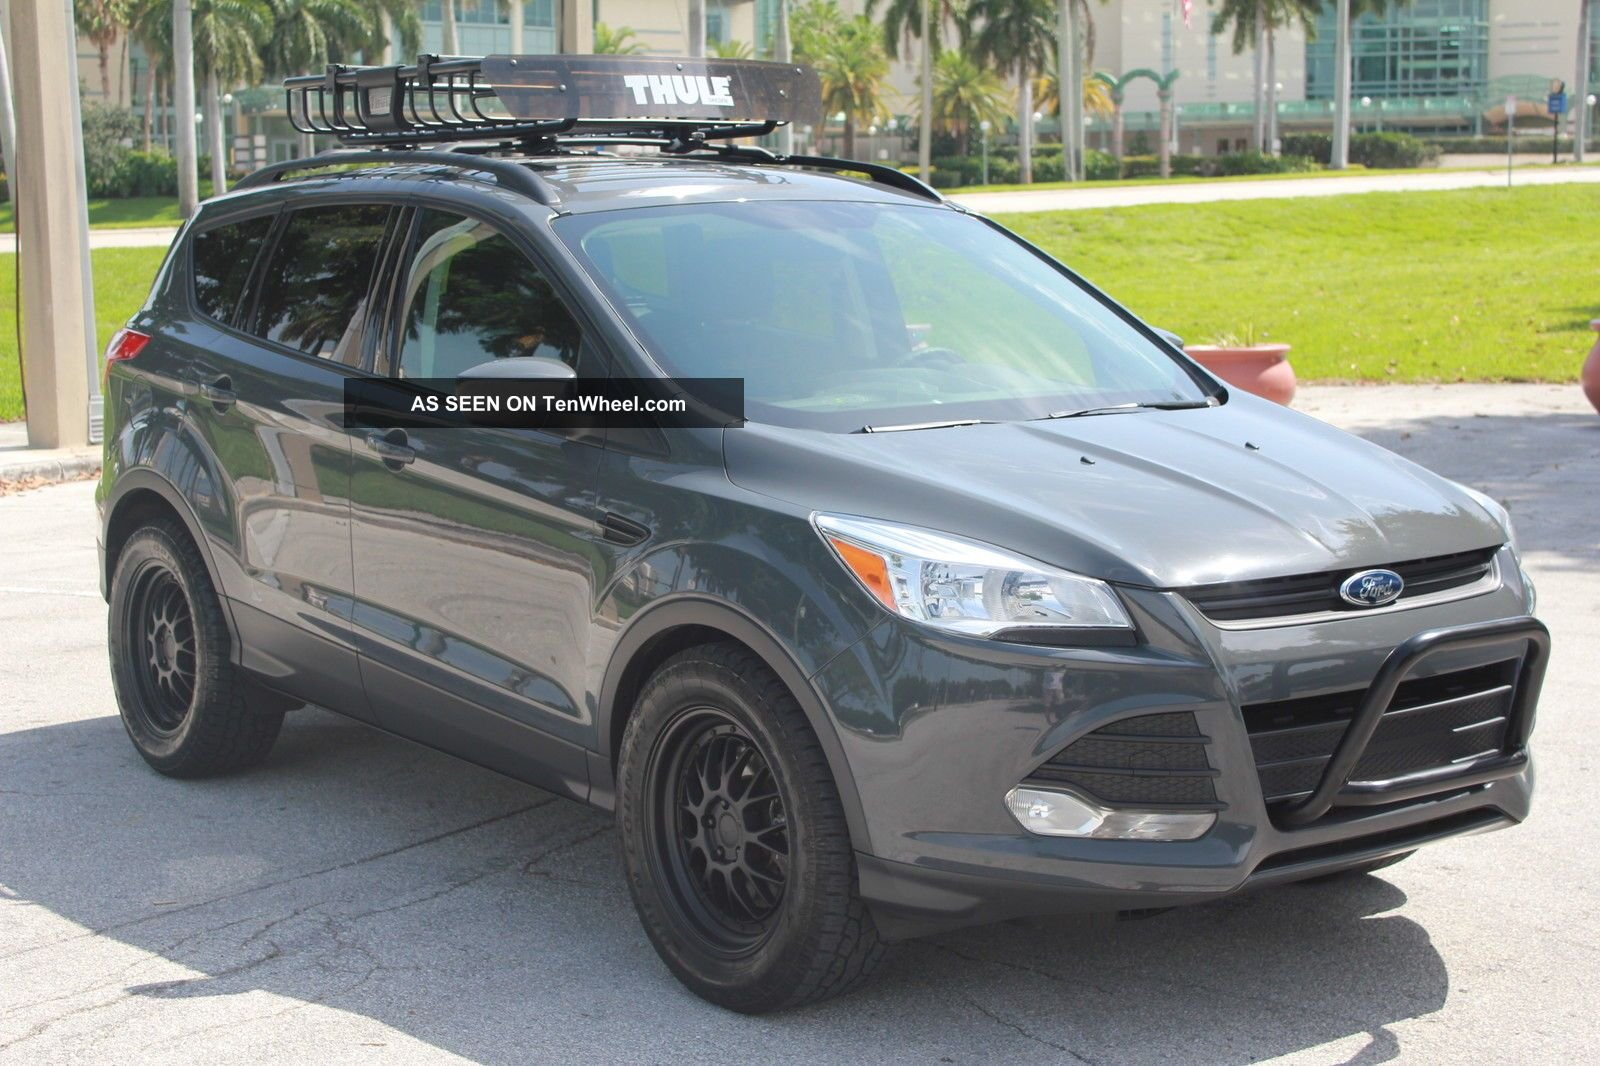 2014 Ford Escape Tires >> Thickest A T Tires For 18 Inchers On An Sel 2013 Ford